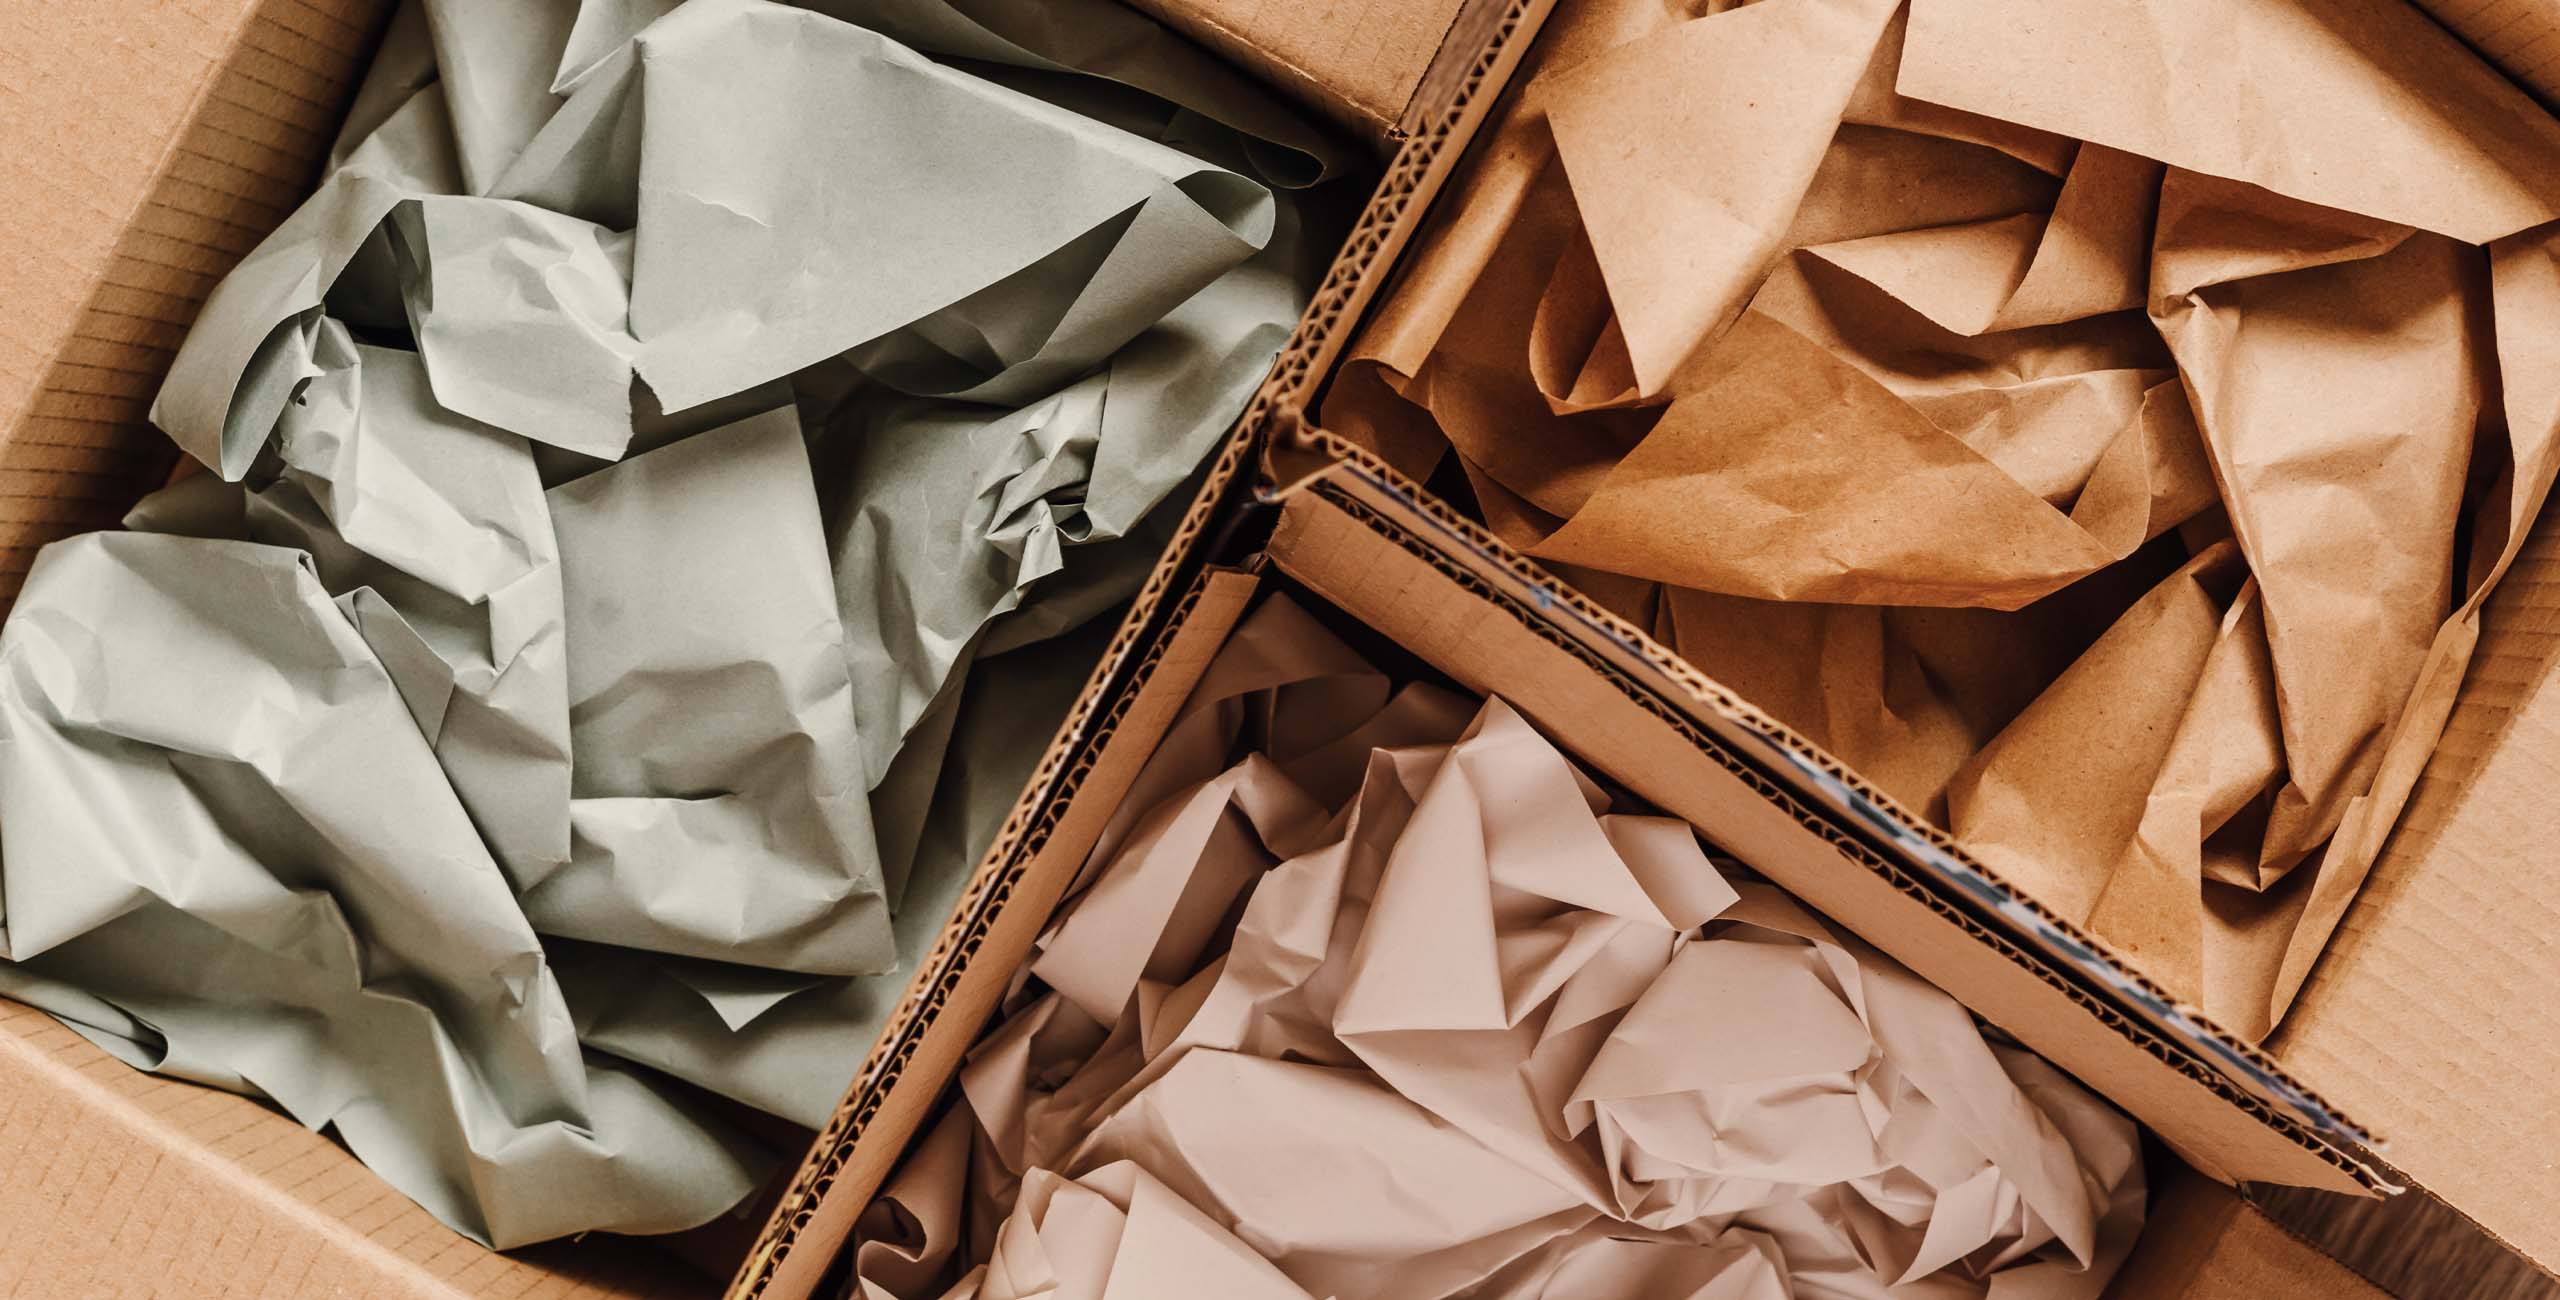 sustainable materials for package shipping